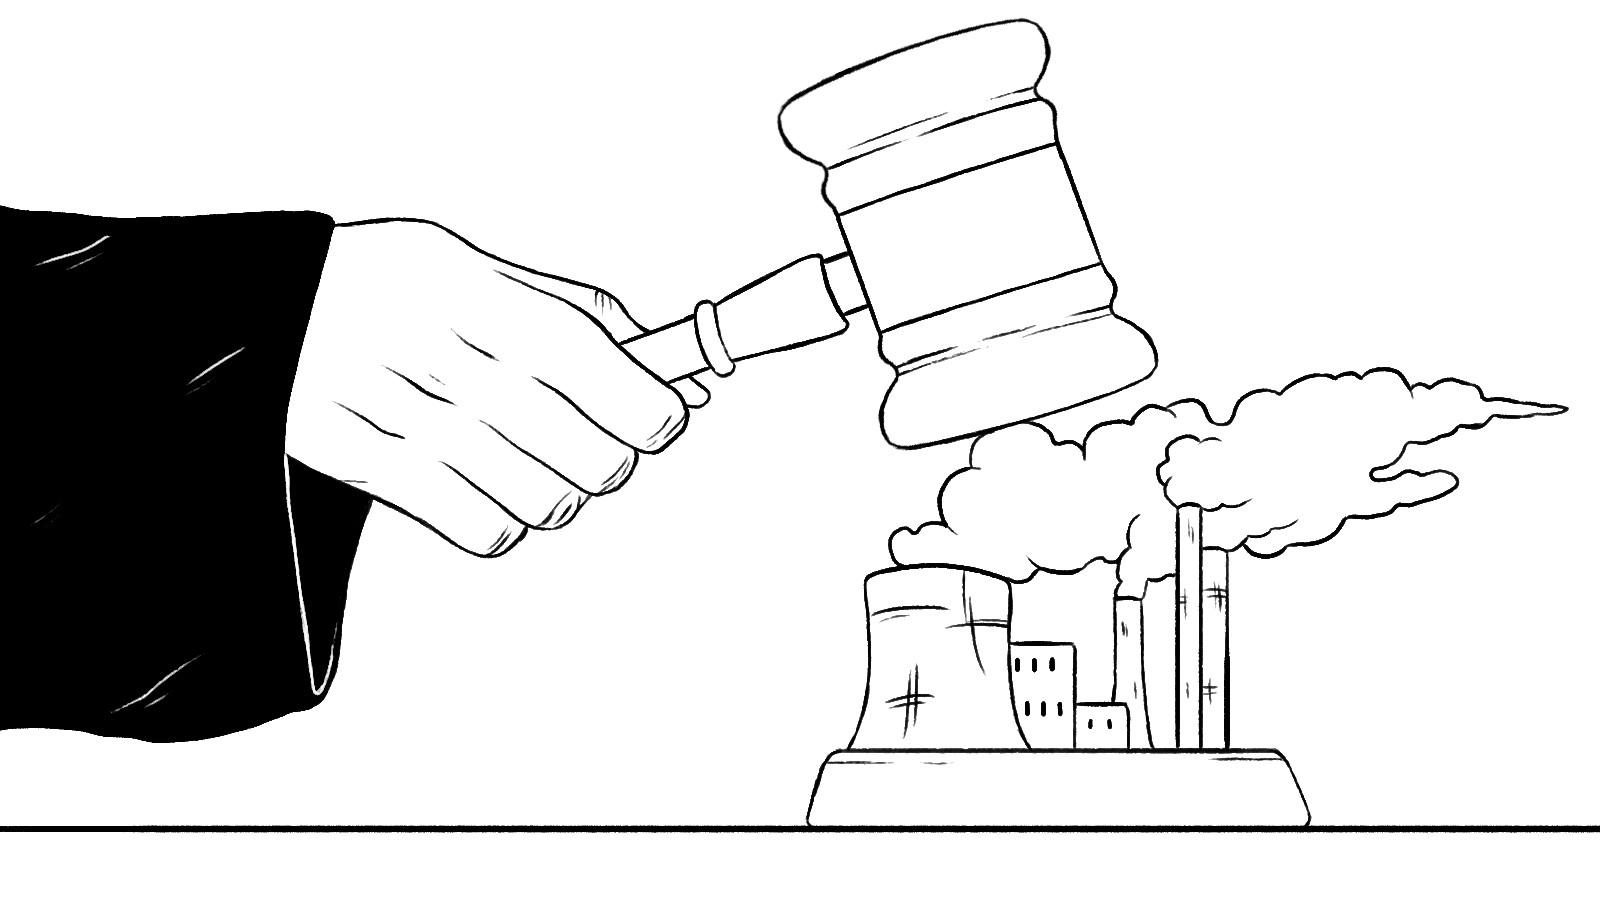 gavel coming down on power plant